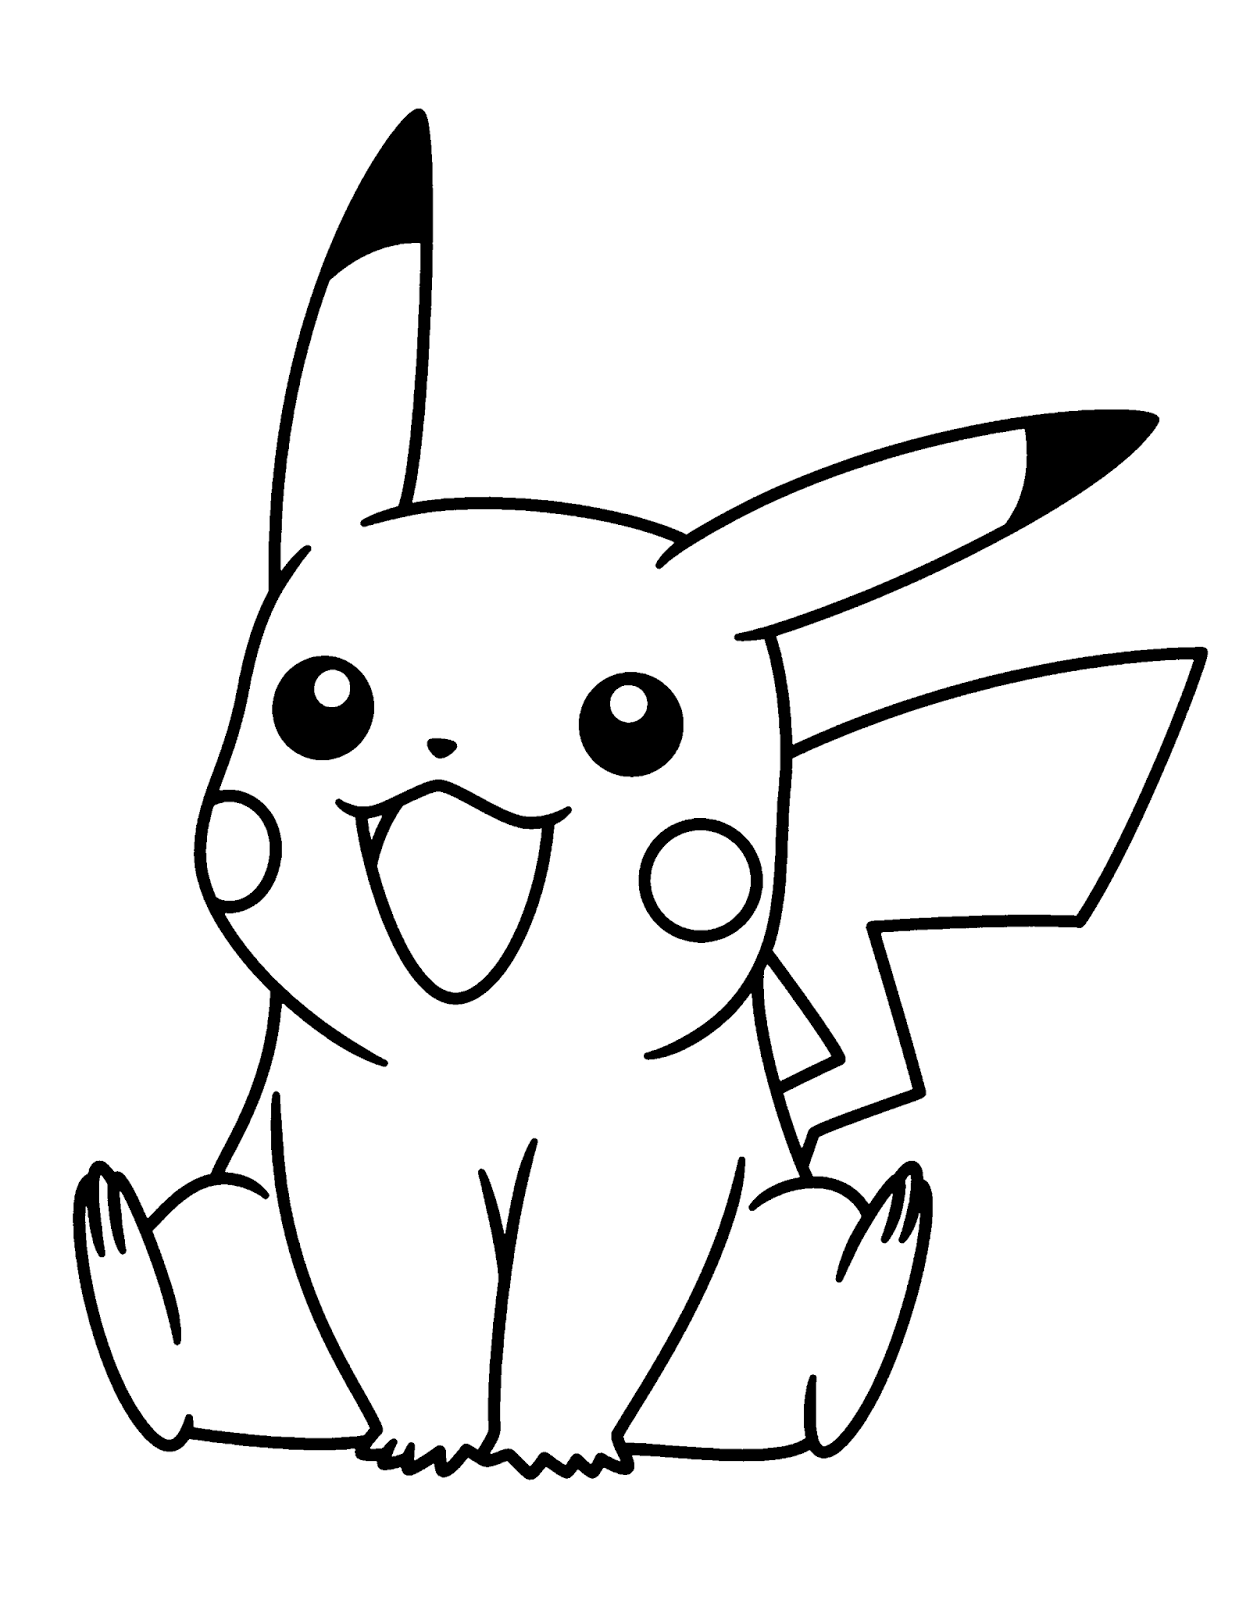 free pokemon coloring sheets pokemon coloring pages join your favorite pokemon on an coloring sheets pokemon free